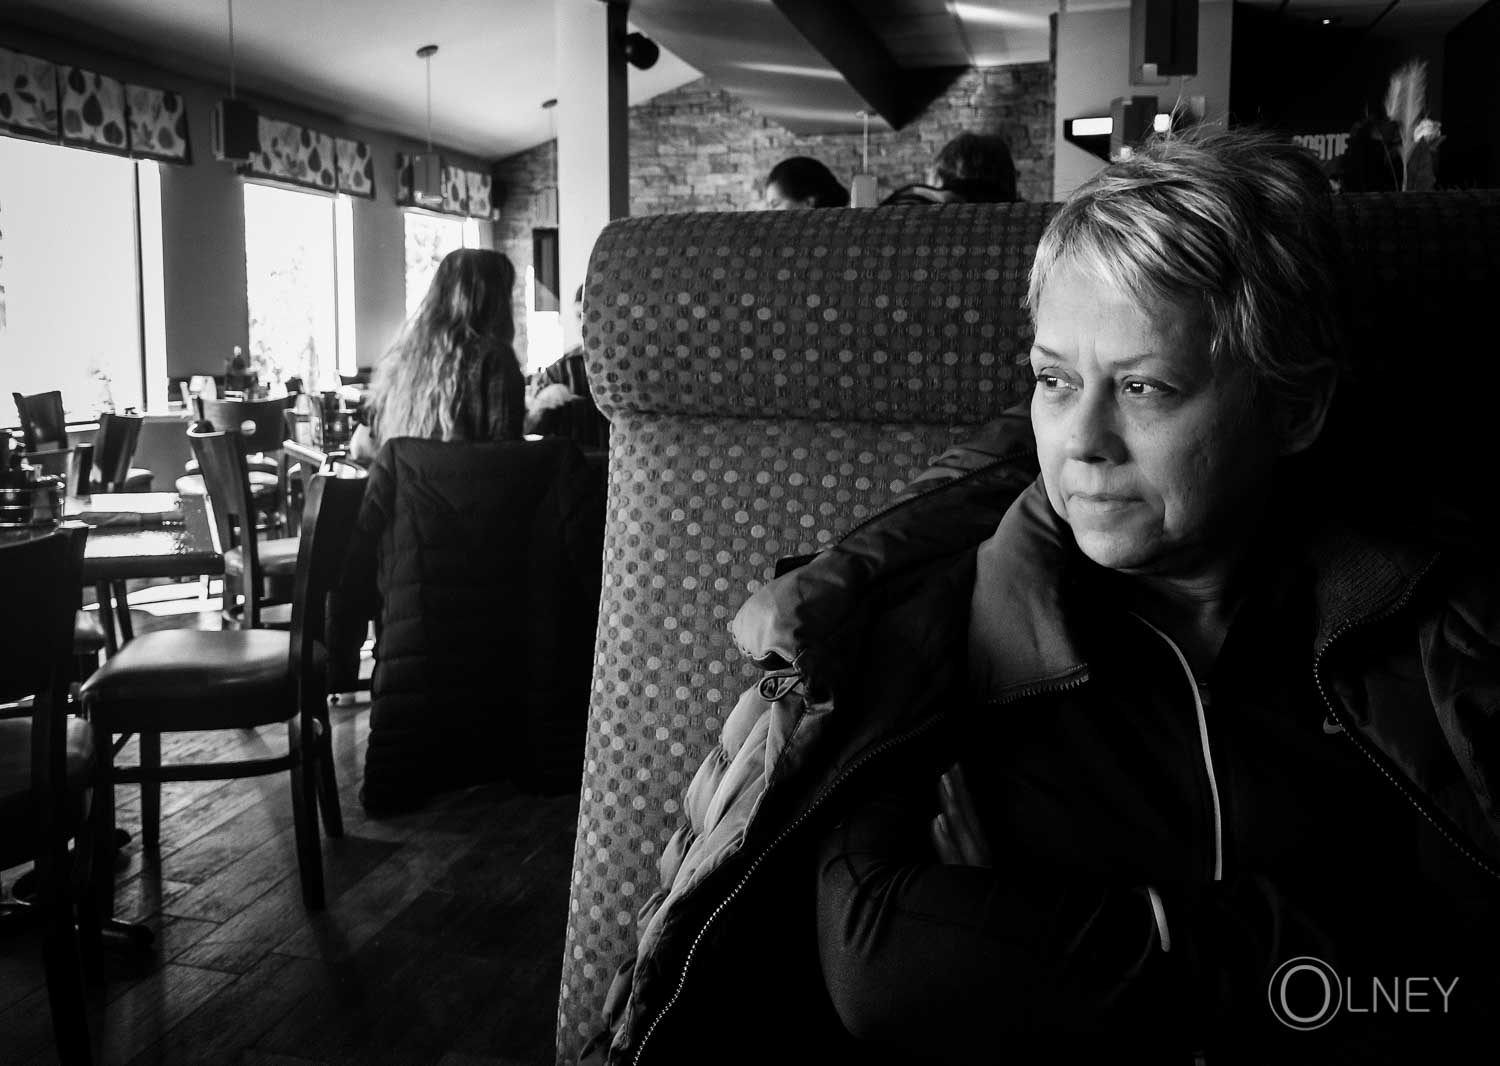 Waiting woman portrait in black and white